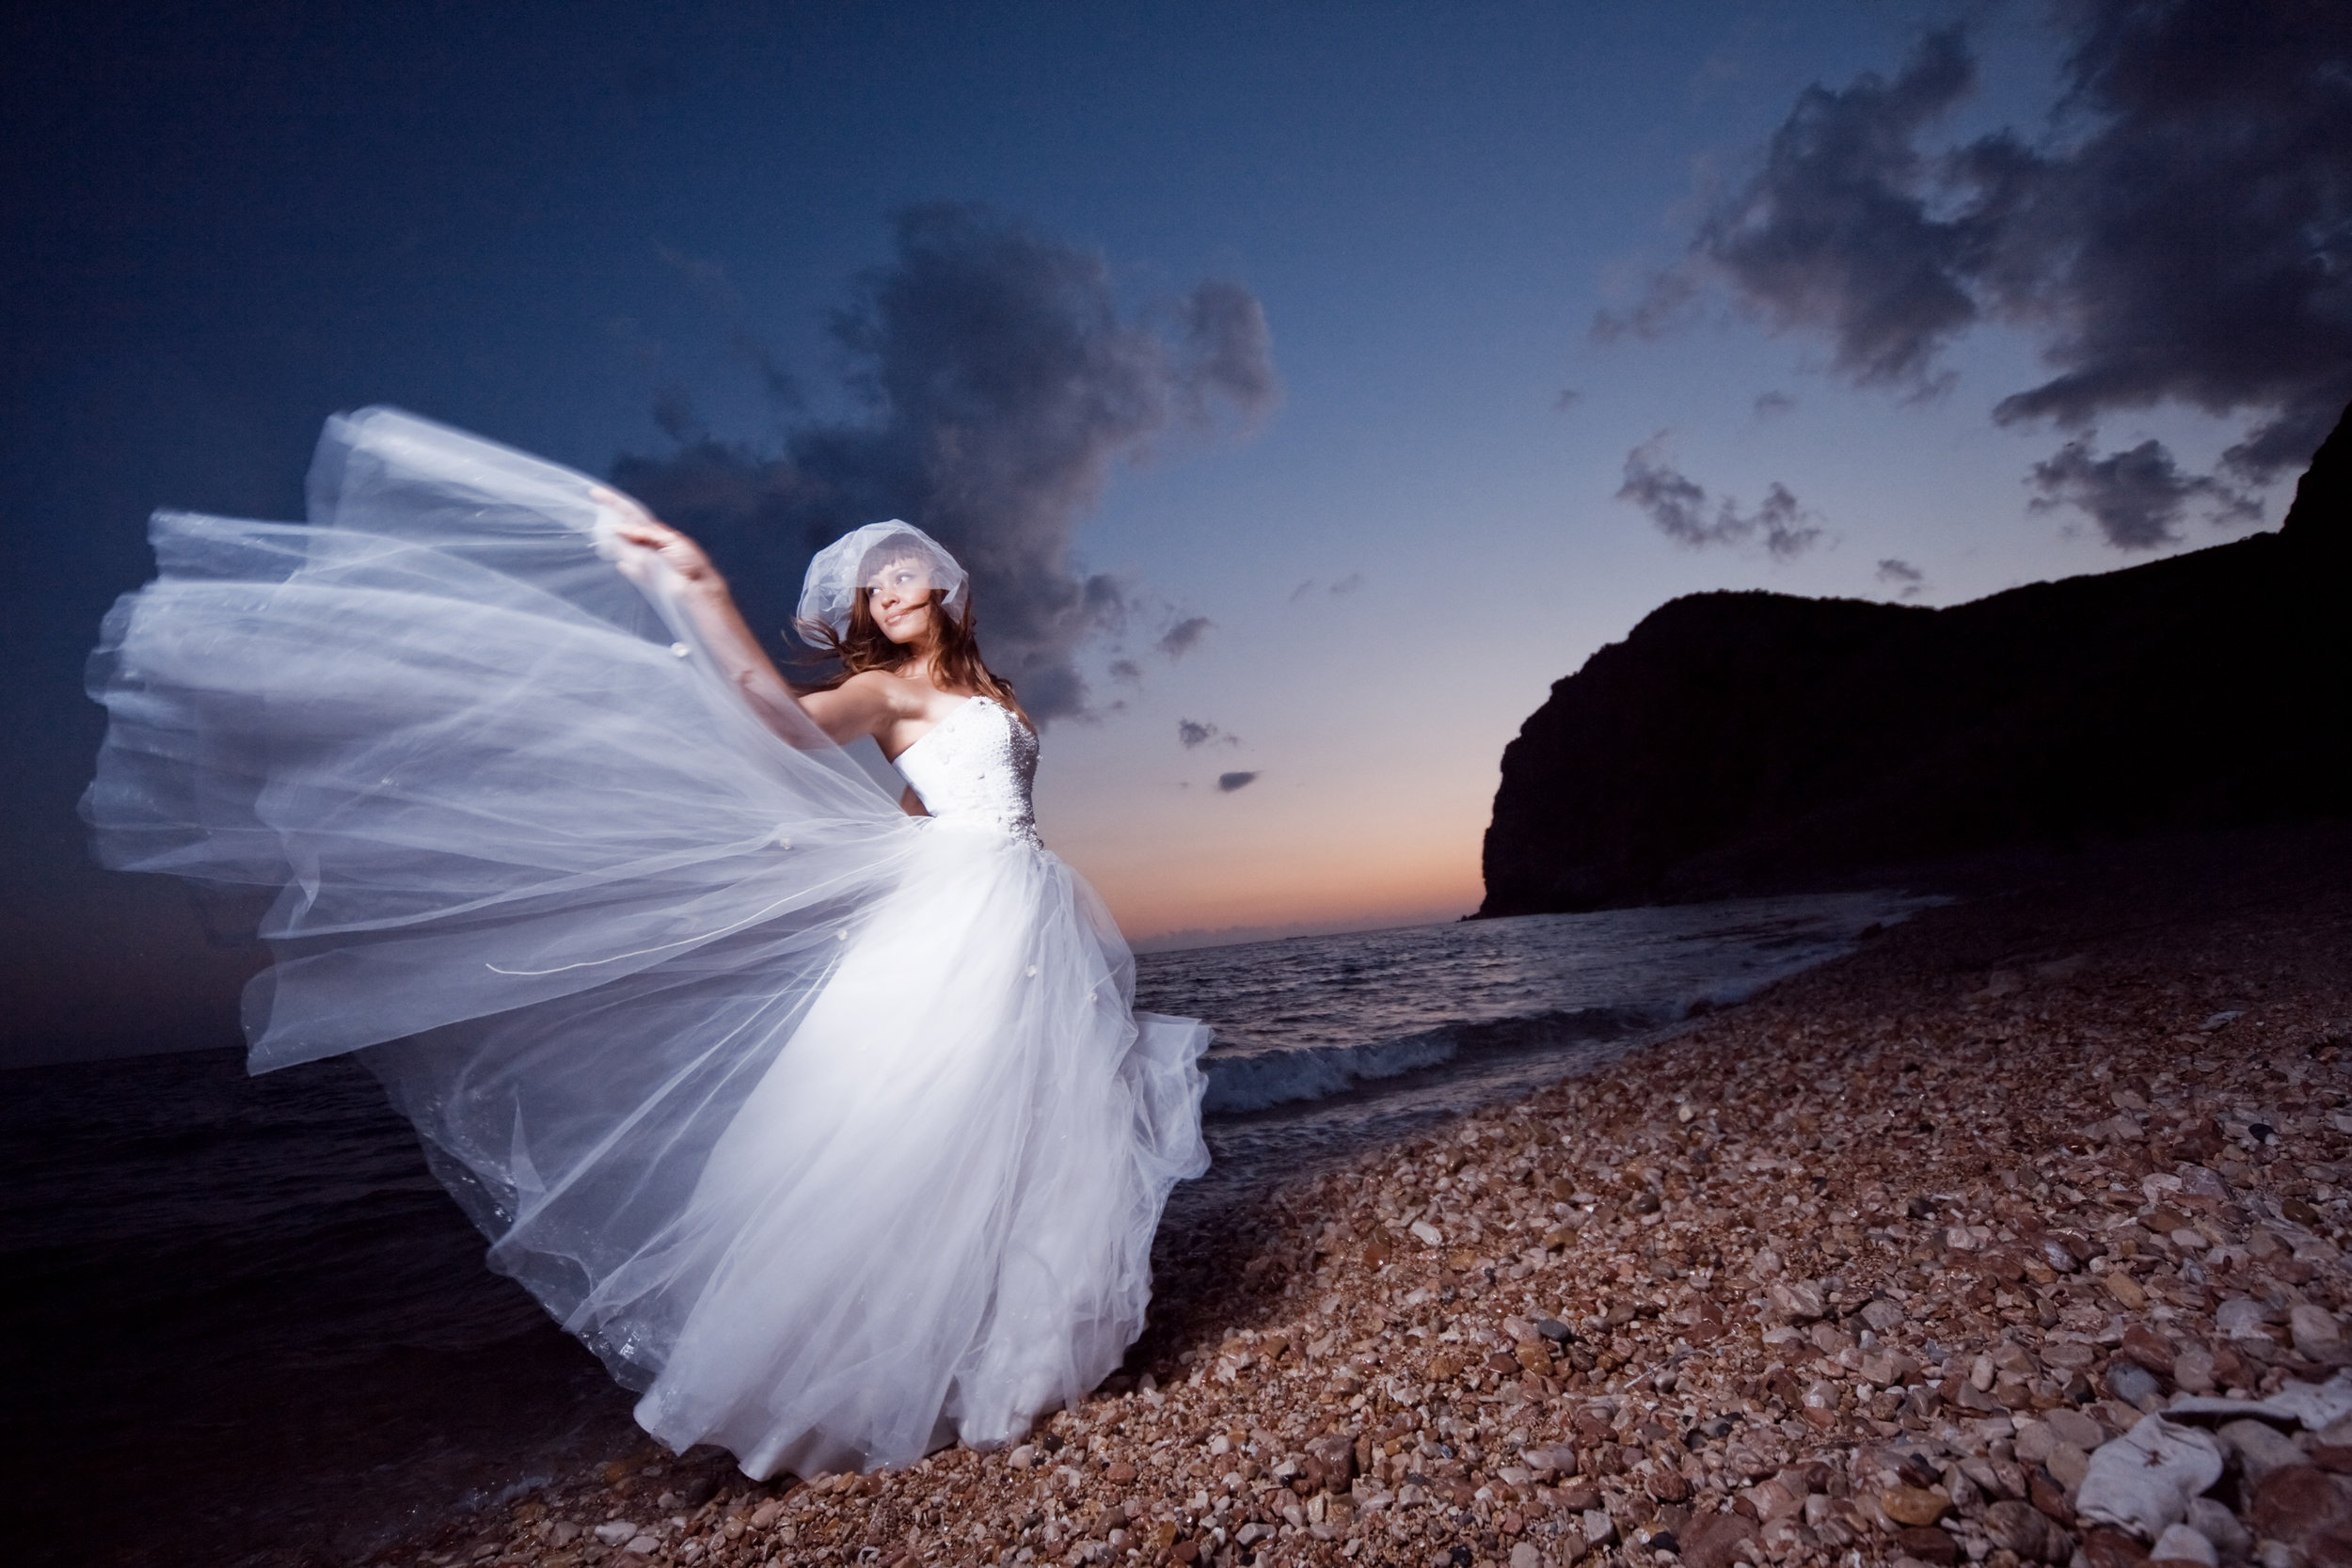 Wedding planners Limassol, wedding photographers Limassol and Cyprus